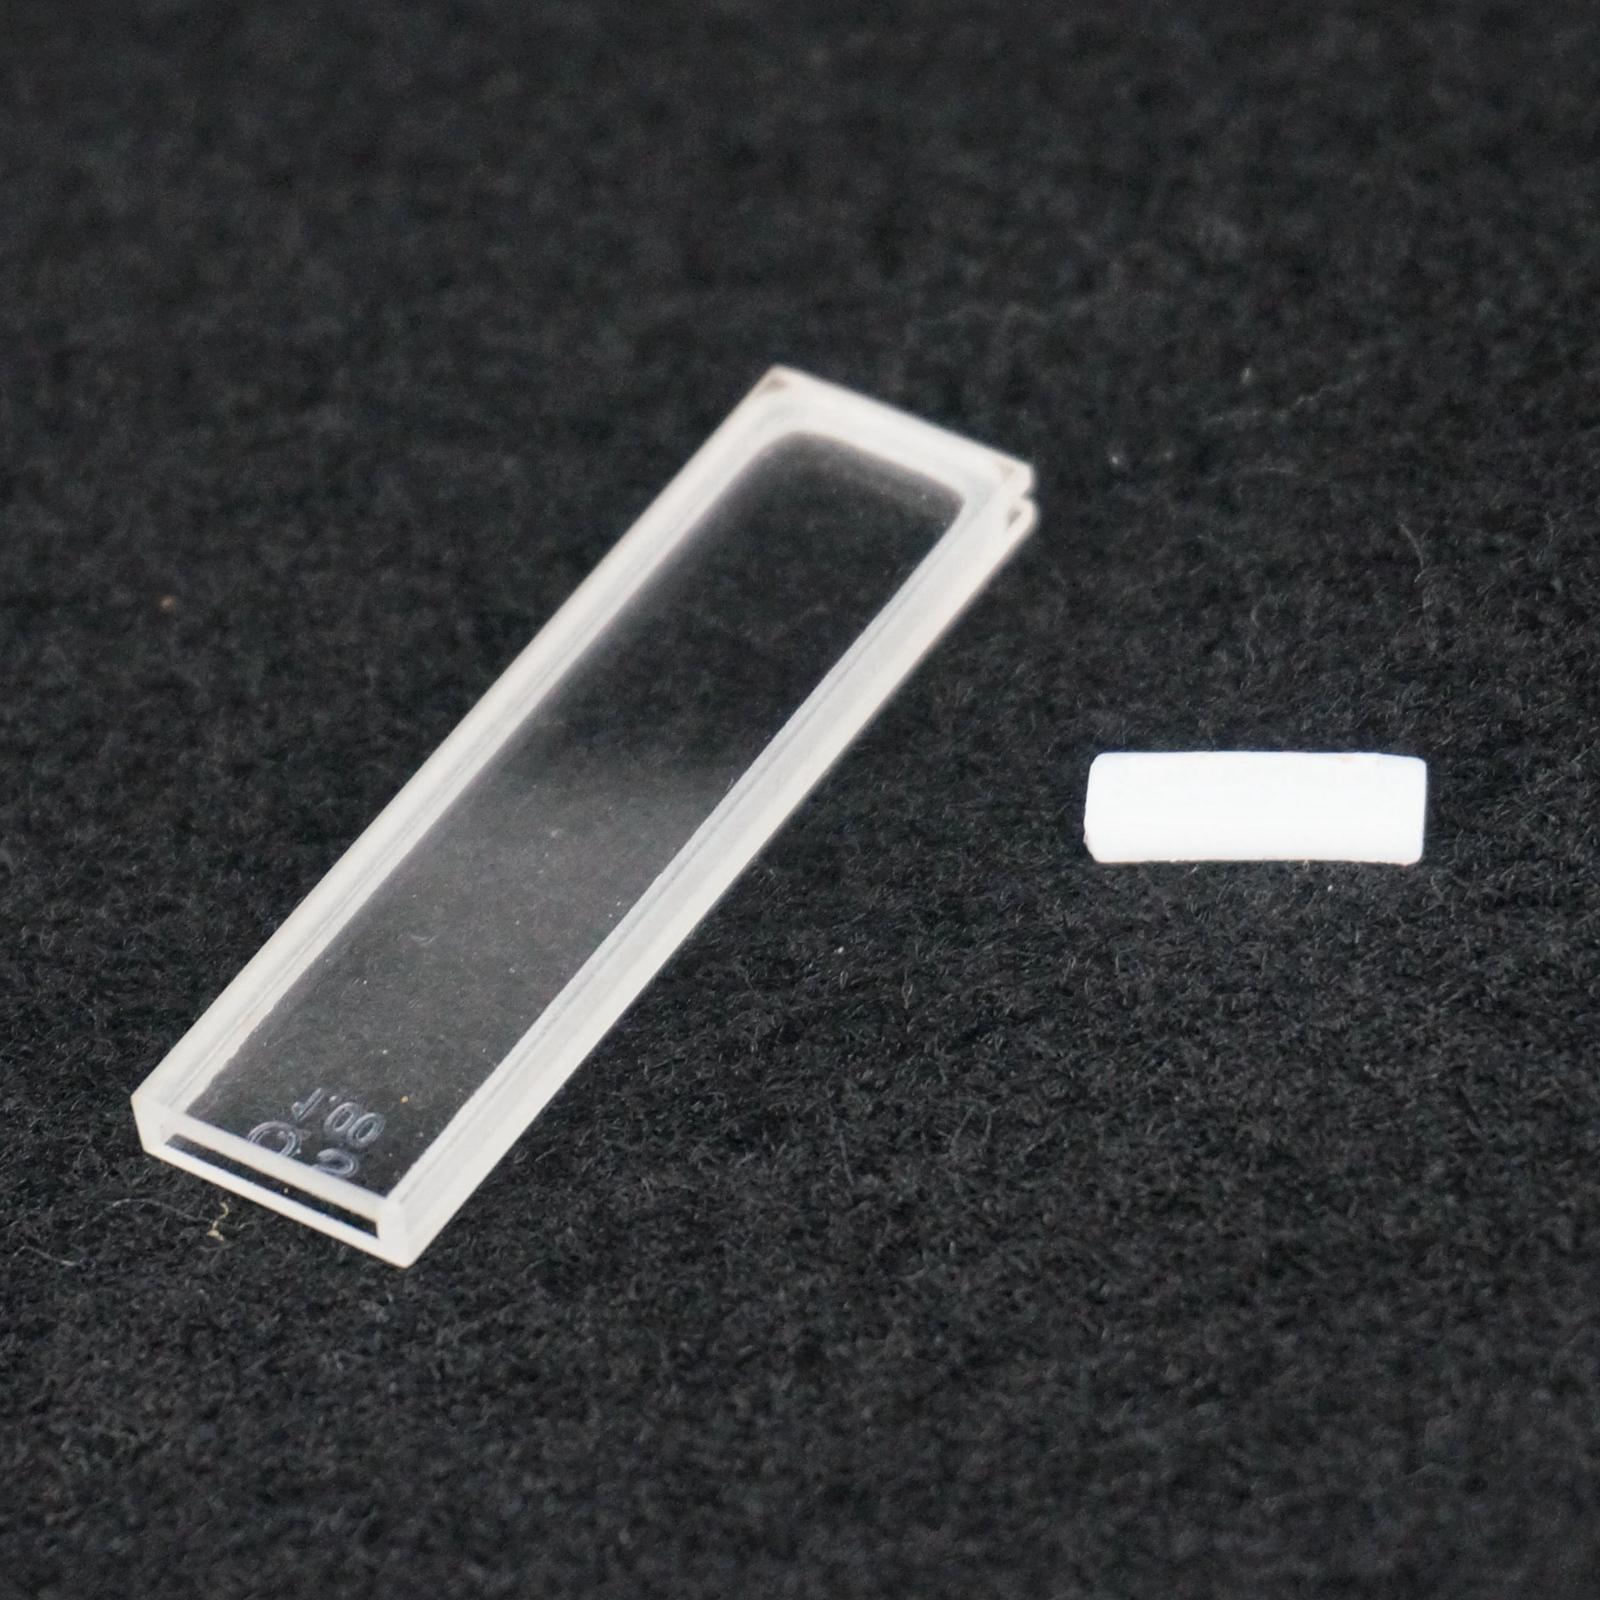 1mm Path Length JGS1 Quartz Cuvette Cell With PTFE Lid For Uv Spectrophotometers